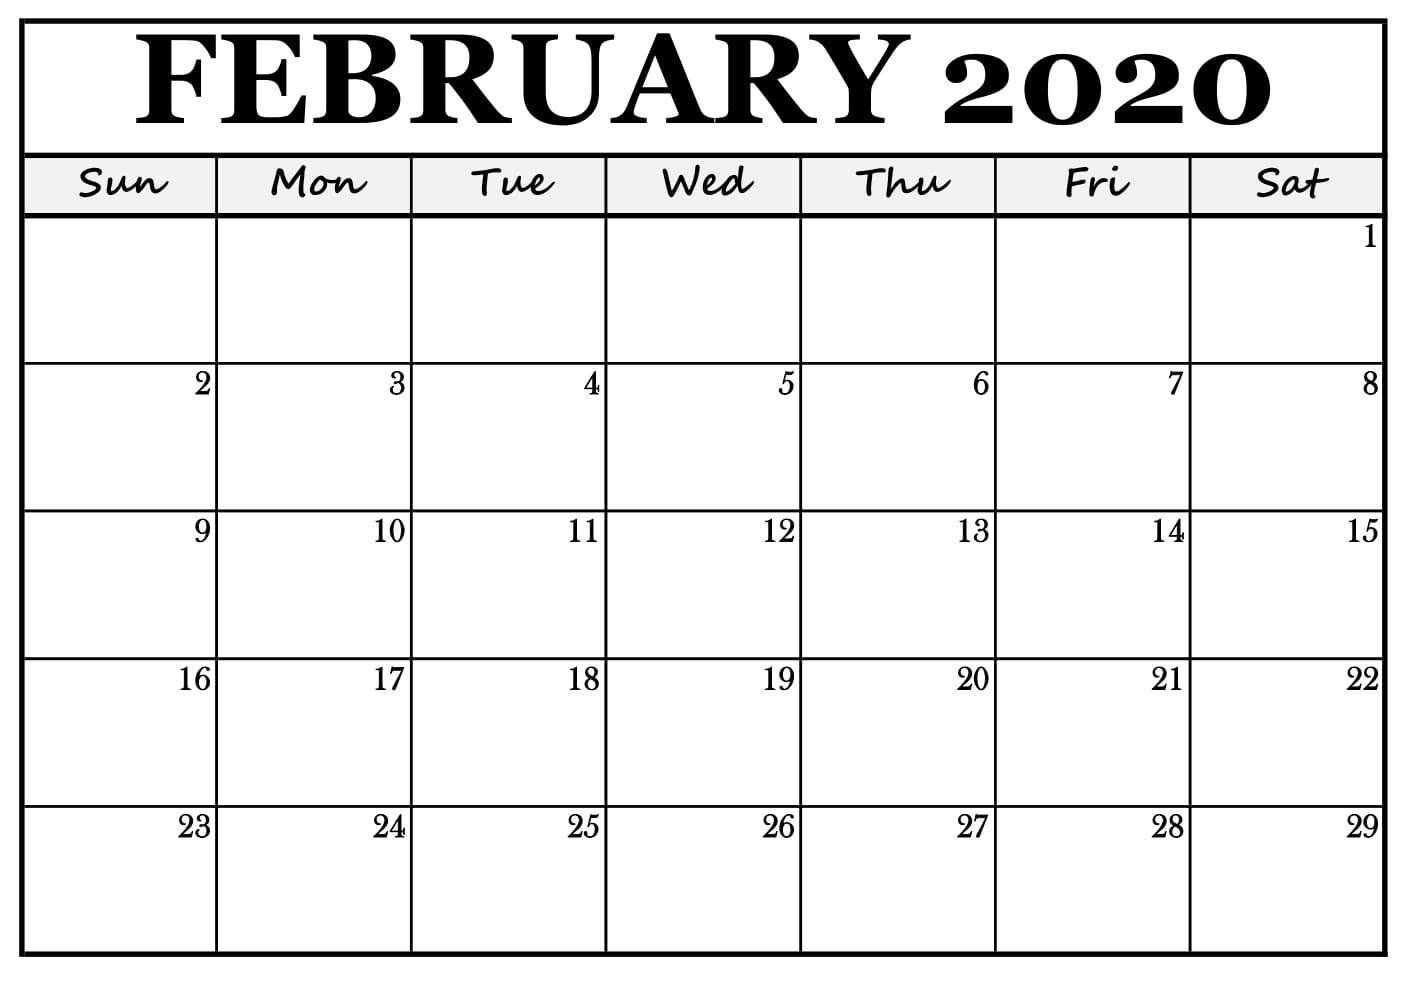 February 2020 Calendar Template Word Document In 2020 Free